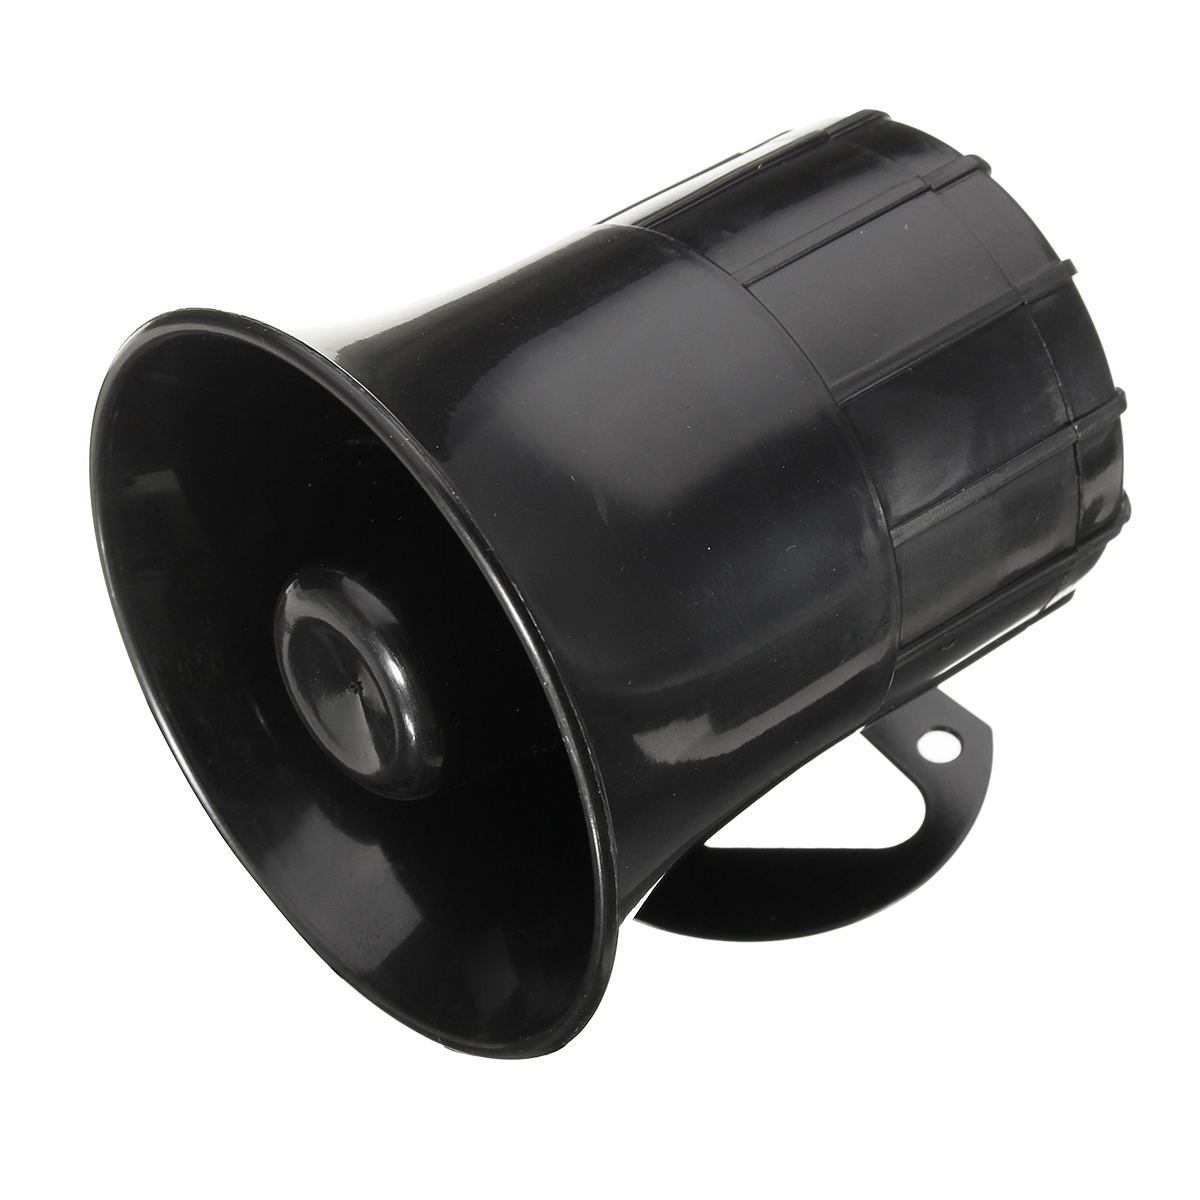 12V 3 Sounds Loud Siren Horn Tone Warning Alarm Amplifier Speaker For Car Motorcycle